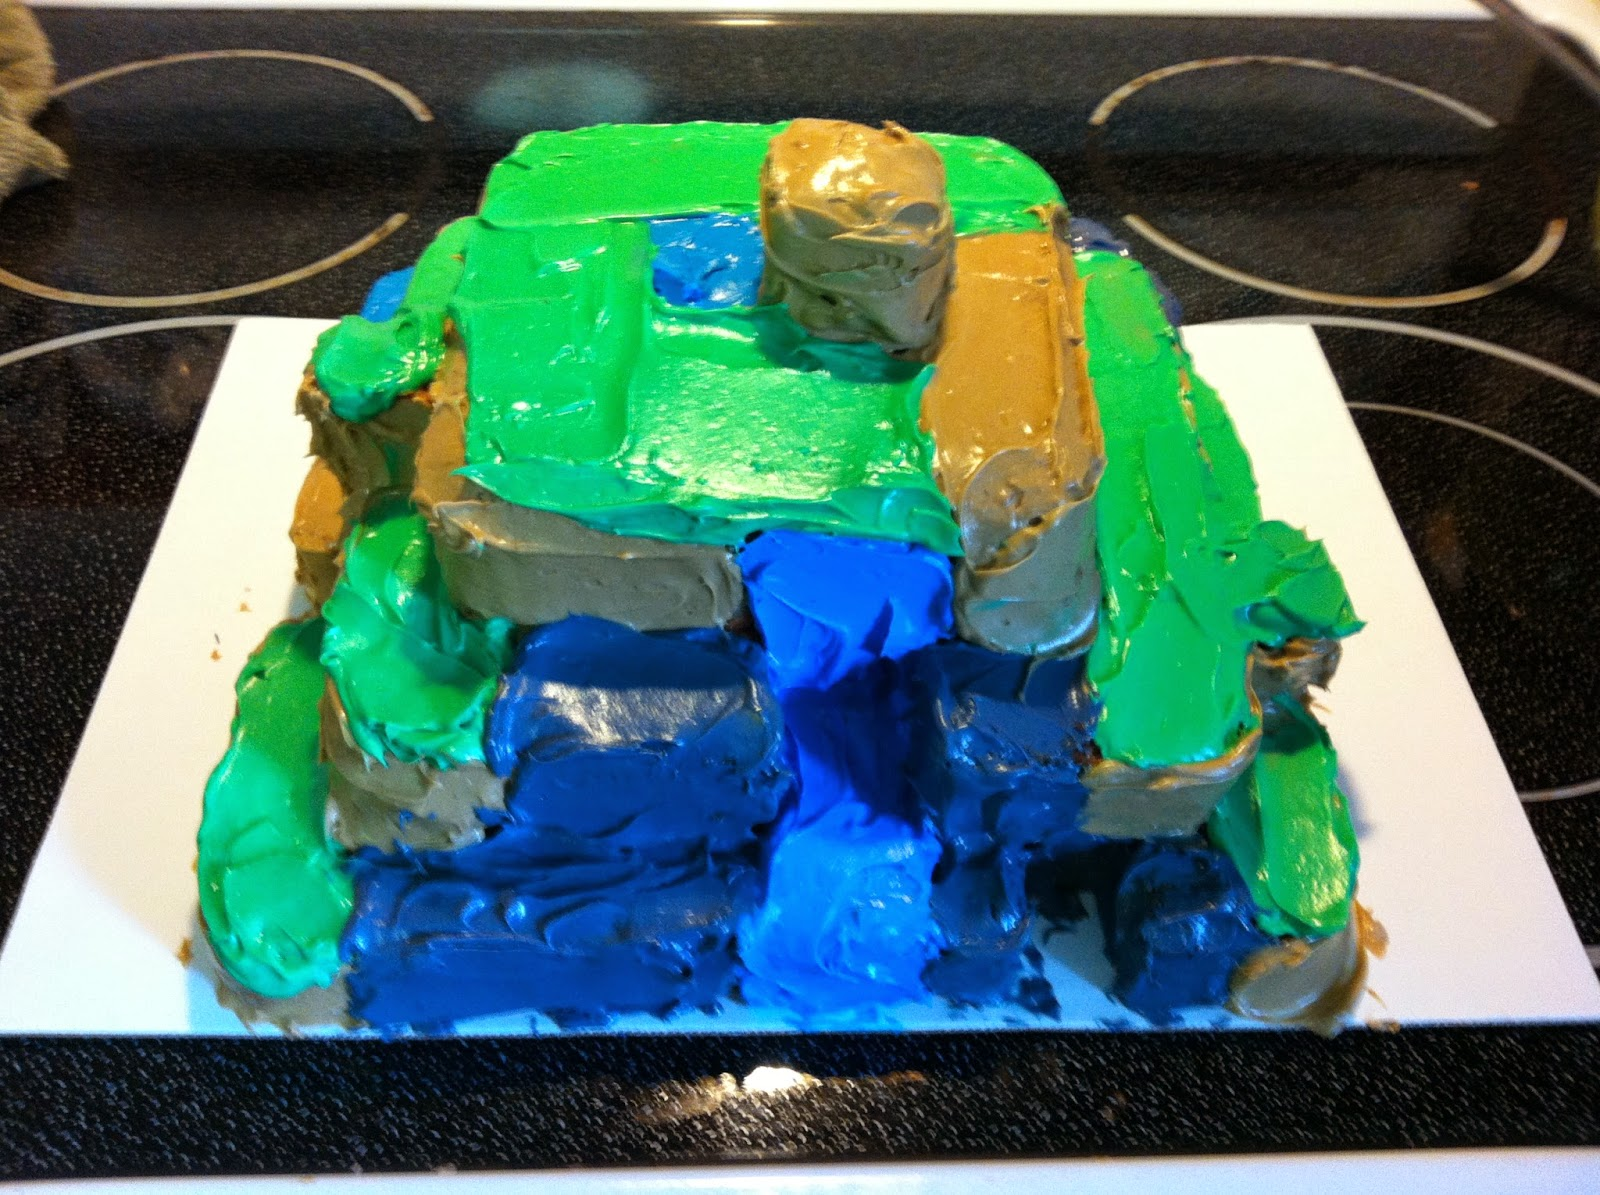 Minecraft cake side 1, featuring a waterfall.